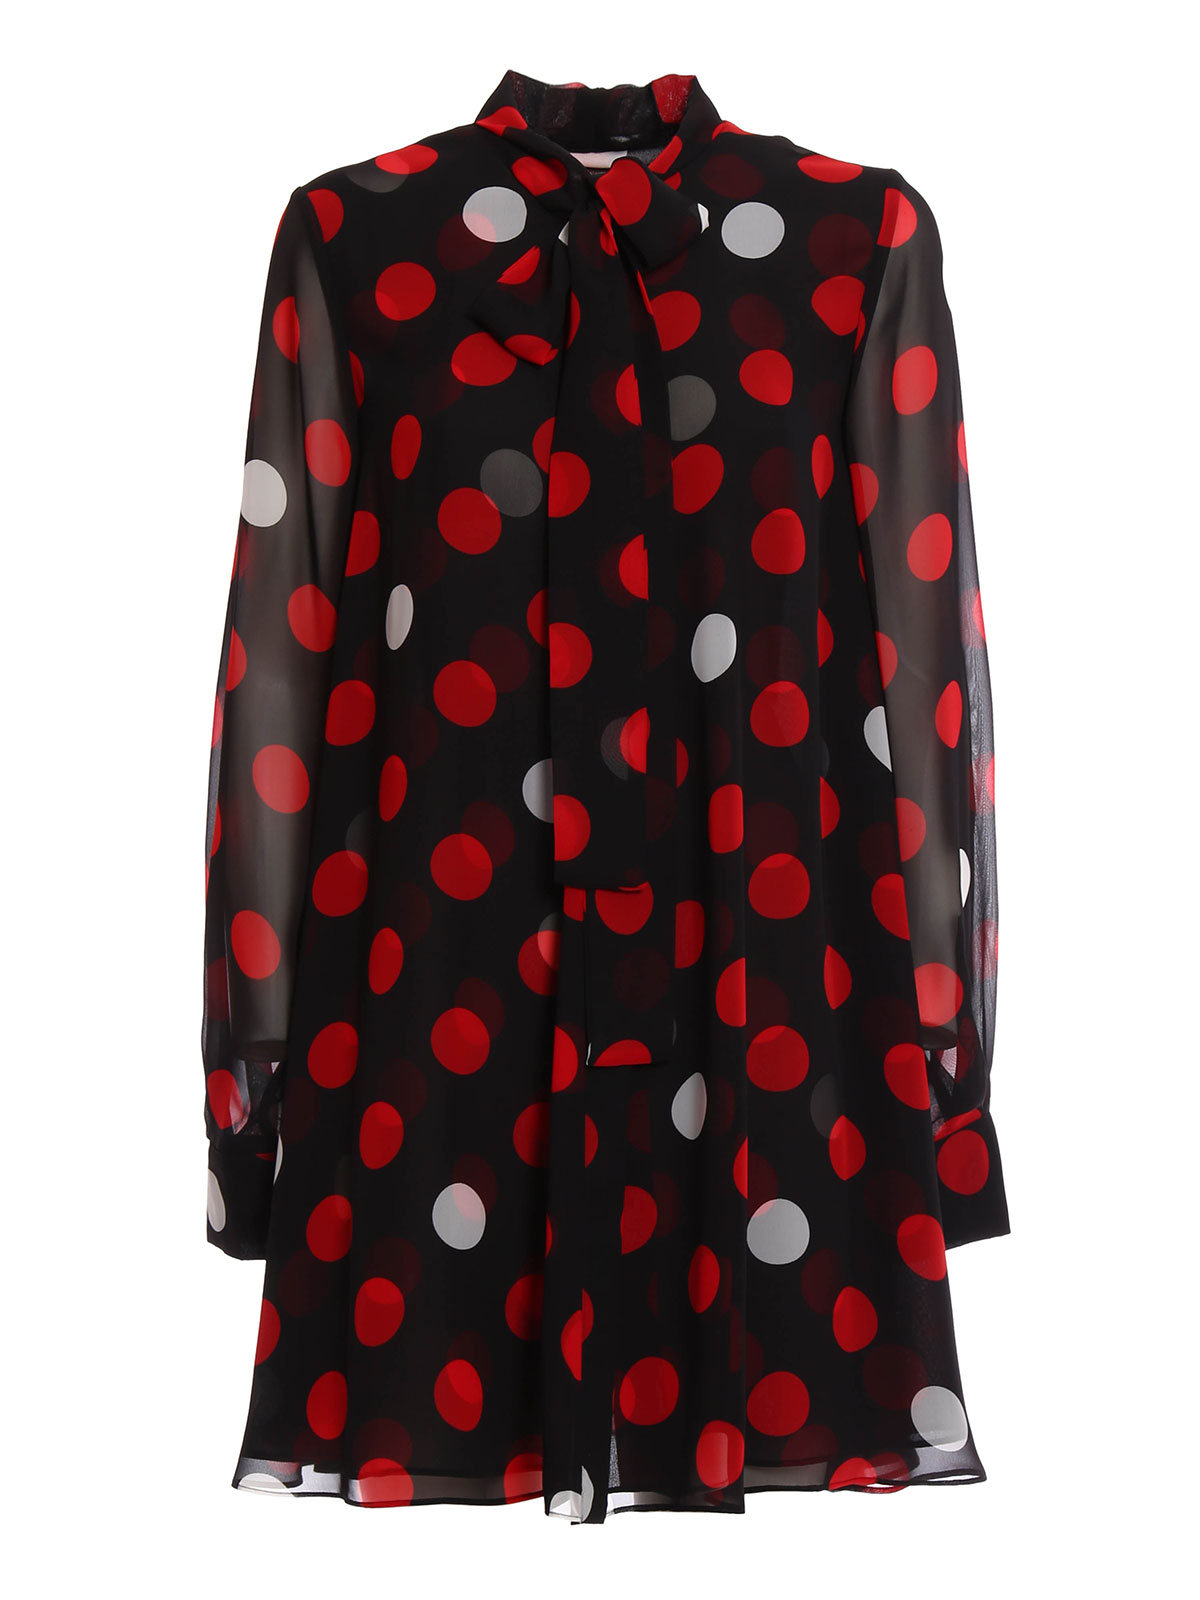 Shop for Women's Polka Dot Short Sleeves Scoop Neck Dress. Get free delivery at rabbetedh.ga - Your Online Women's Clothing Destination! Get 5% in rewards with Club O! -